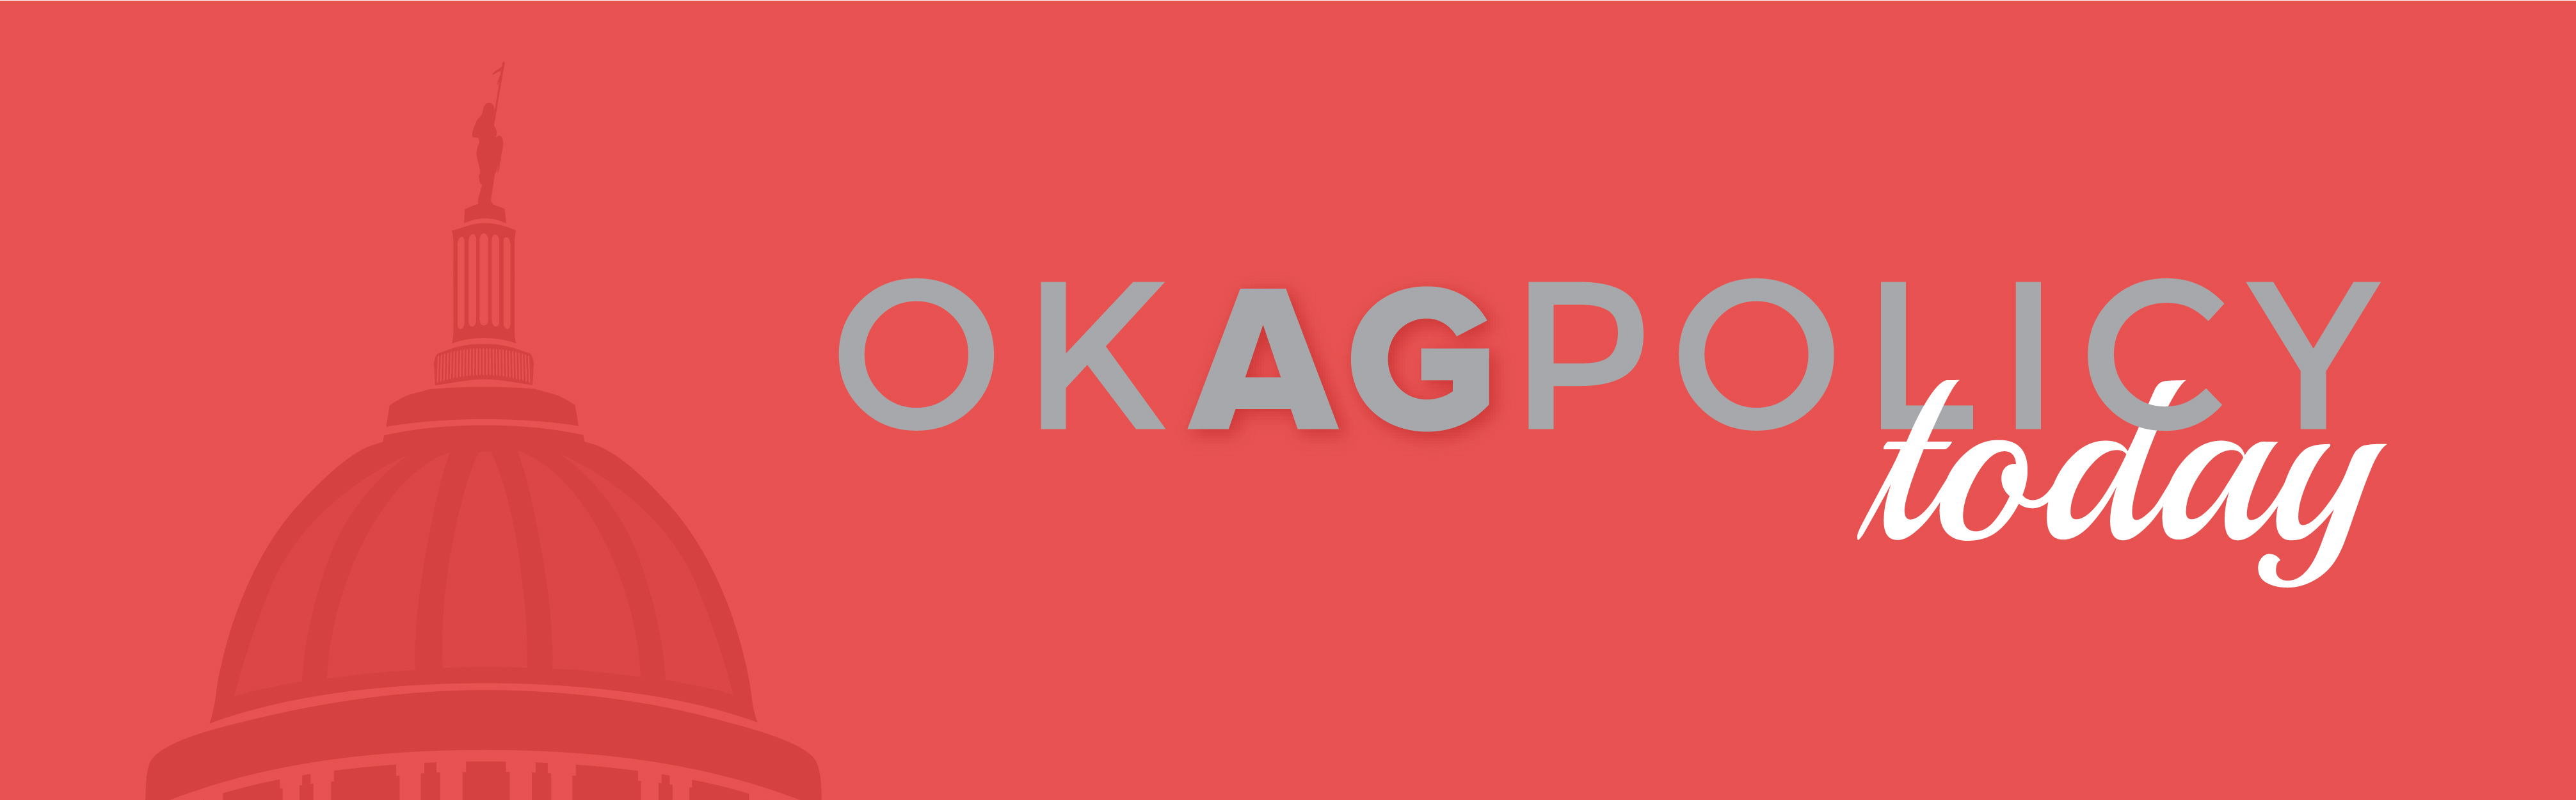 OKAgPolicyToday Announcement-01